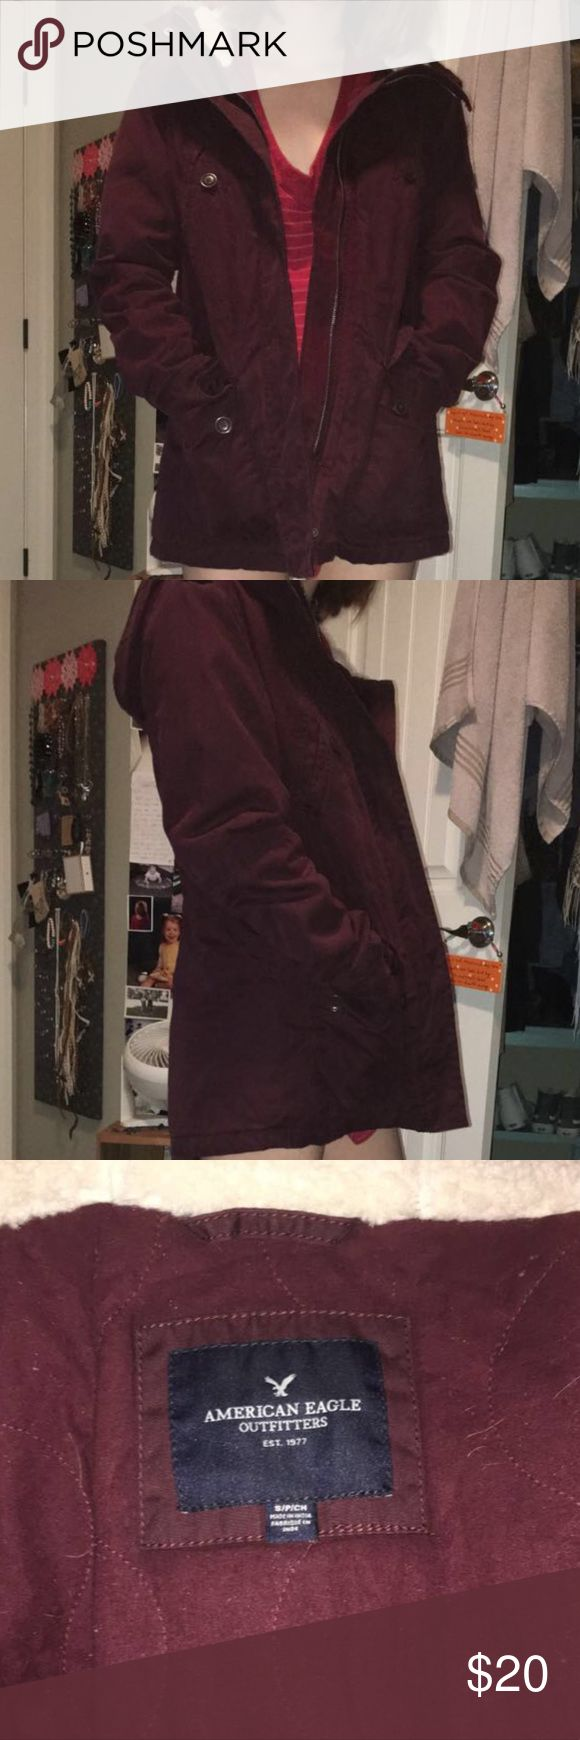 Dark red American Eagle jacket Wool on the inside. Jacket full of pockets aha! Made for winter/colder weather but still not insanely trap heating. American Eagle Outfitters Jackets & Coats